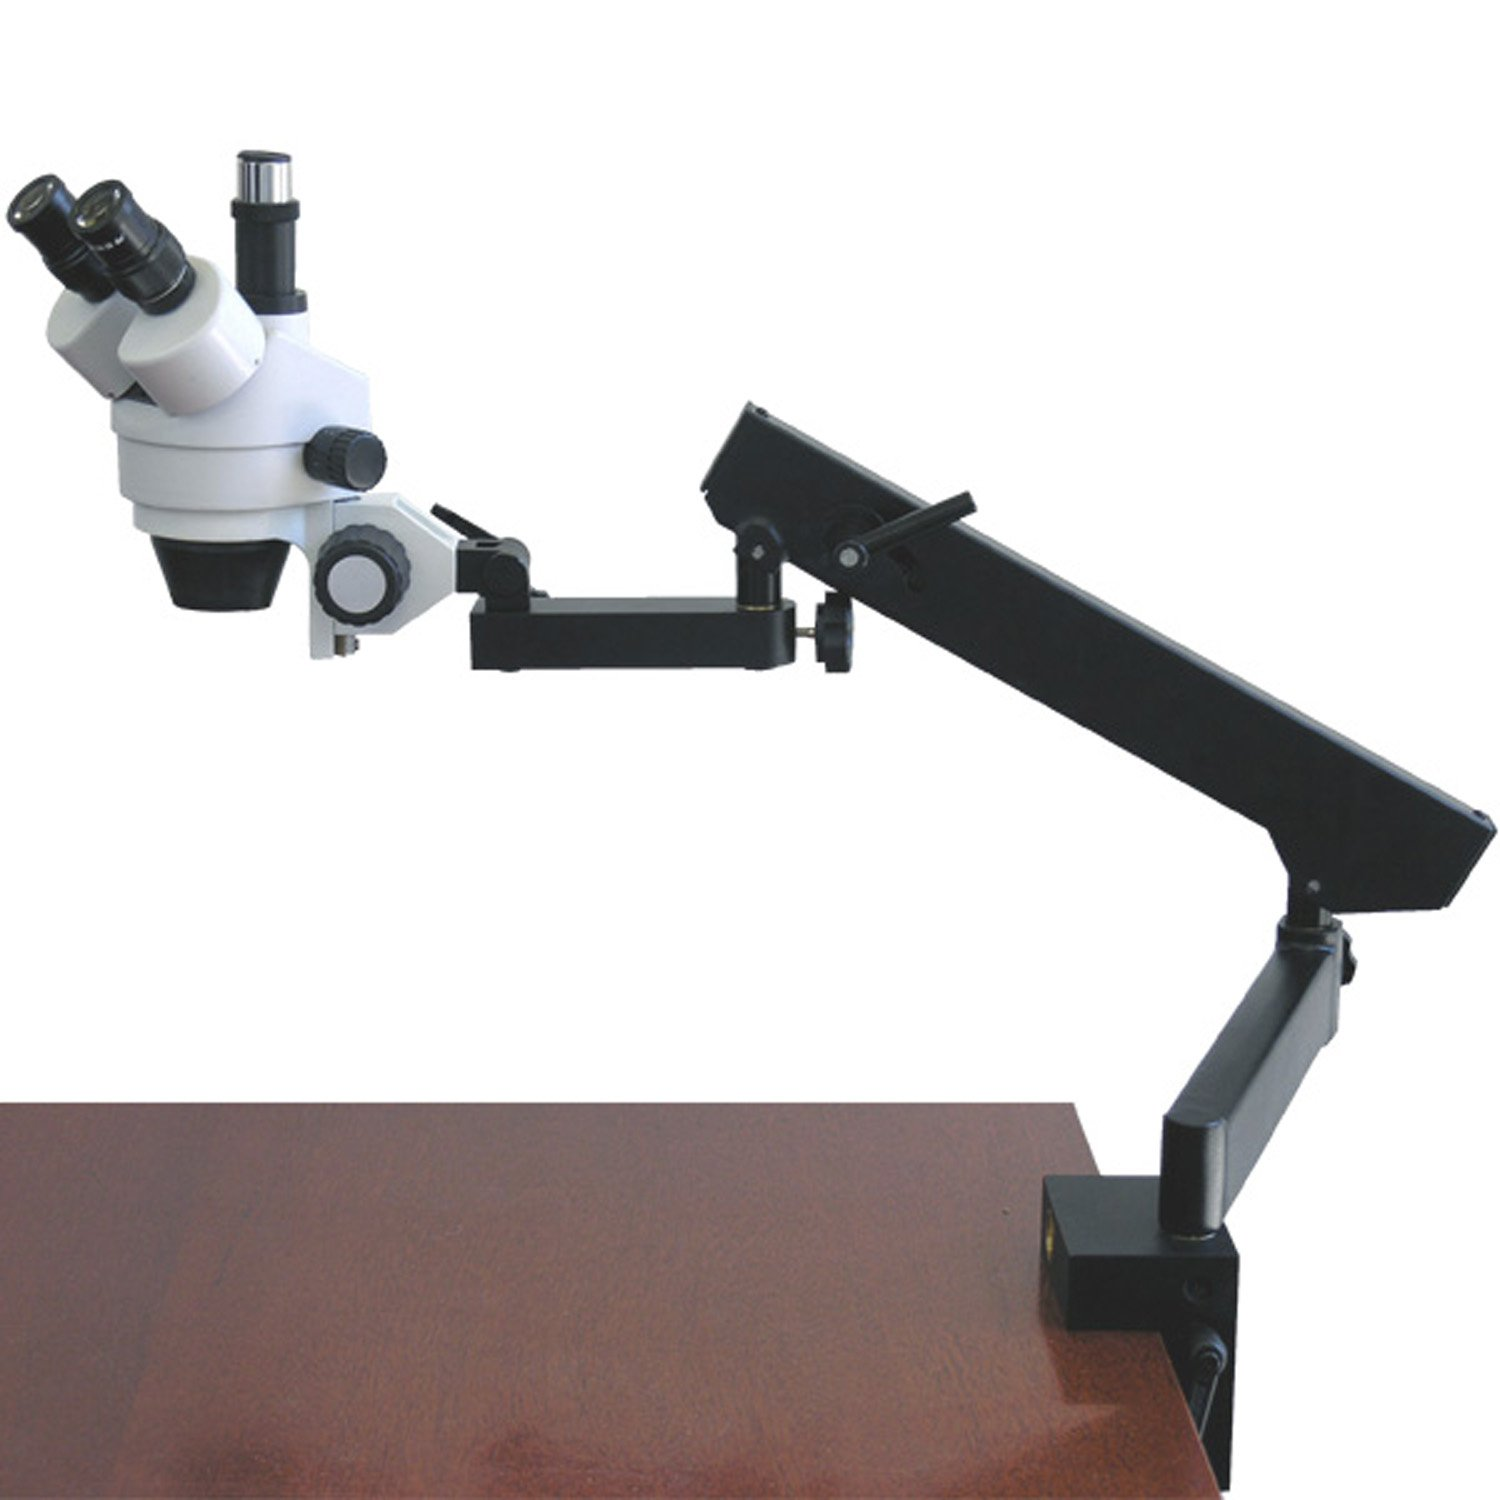 AmScope 3.5X 45X Trinocular Articulating Zoom Microscope with Clamp